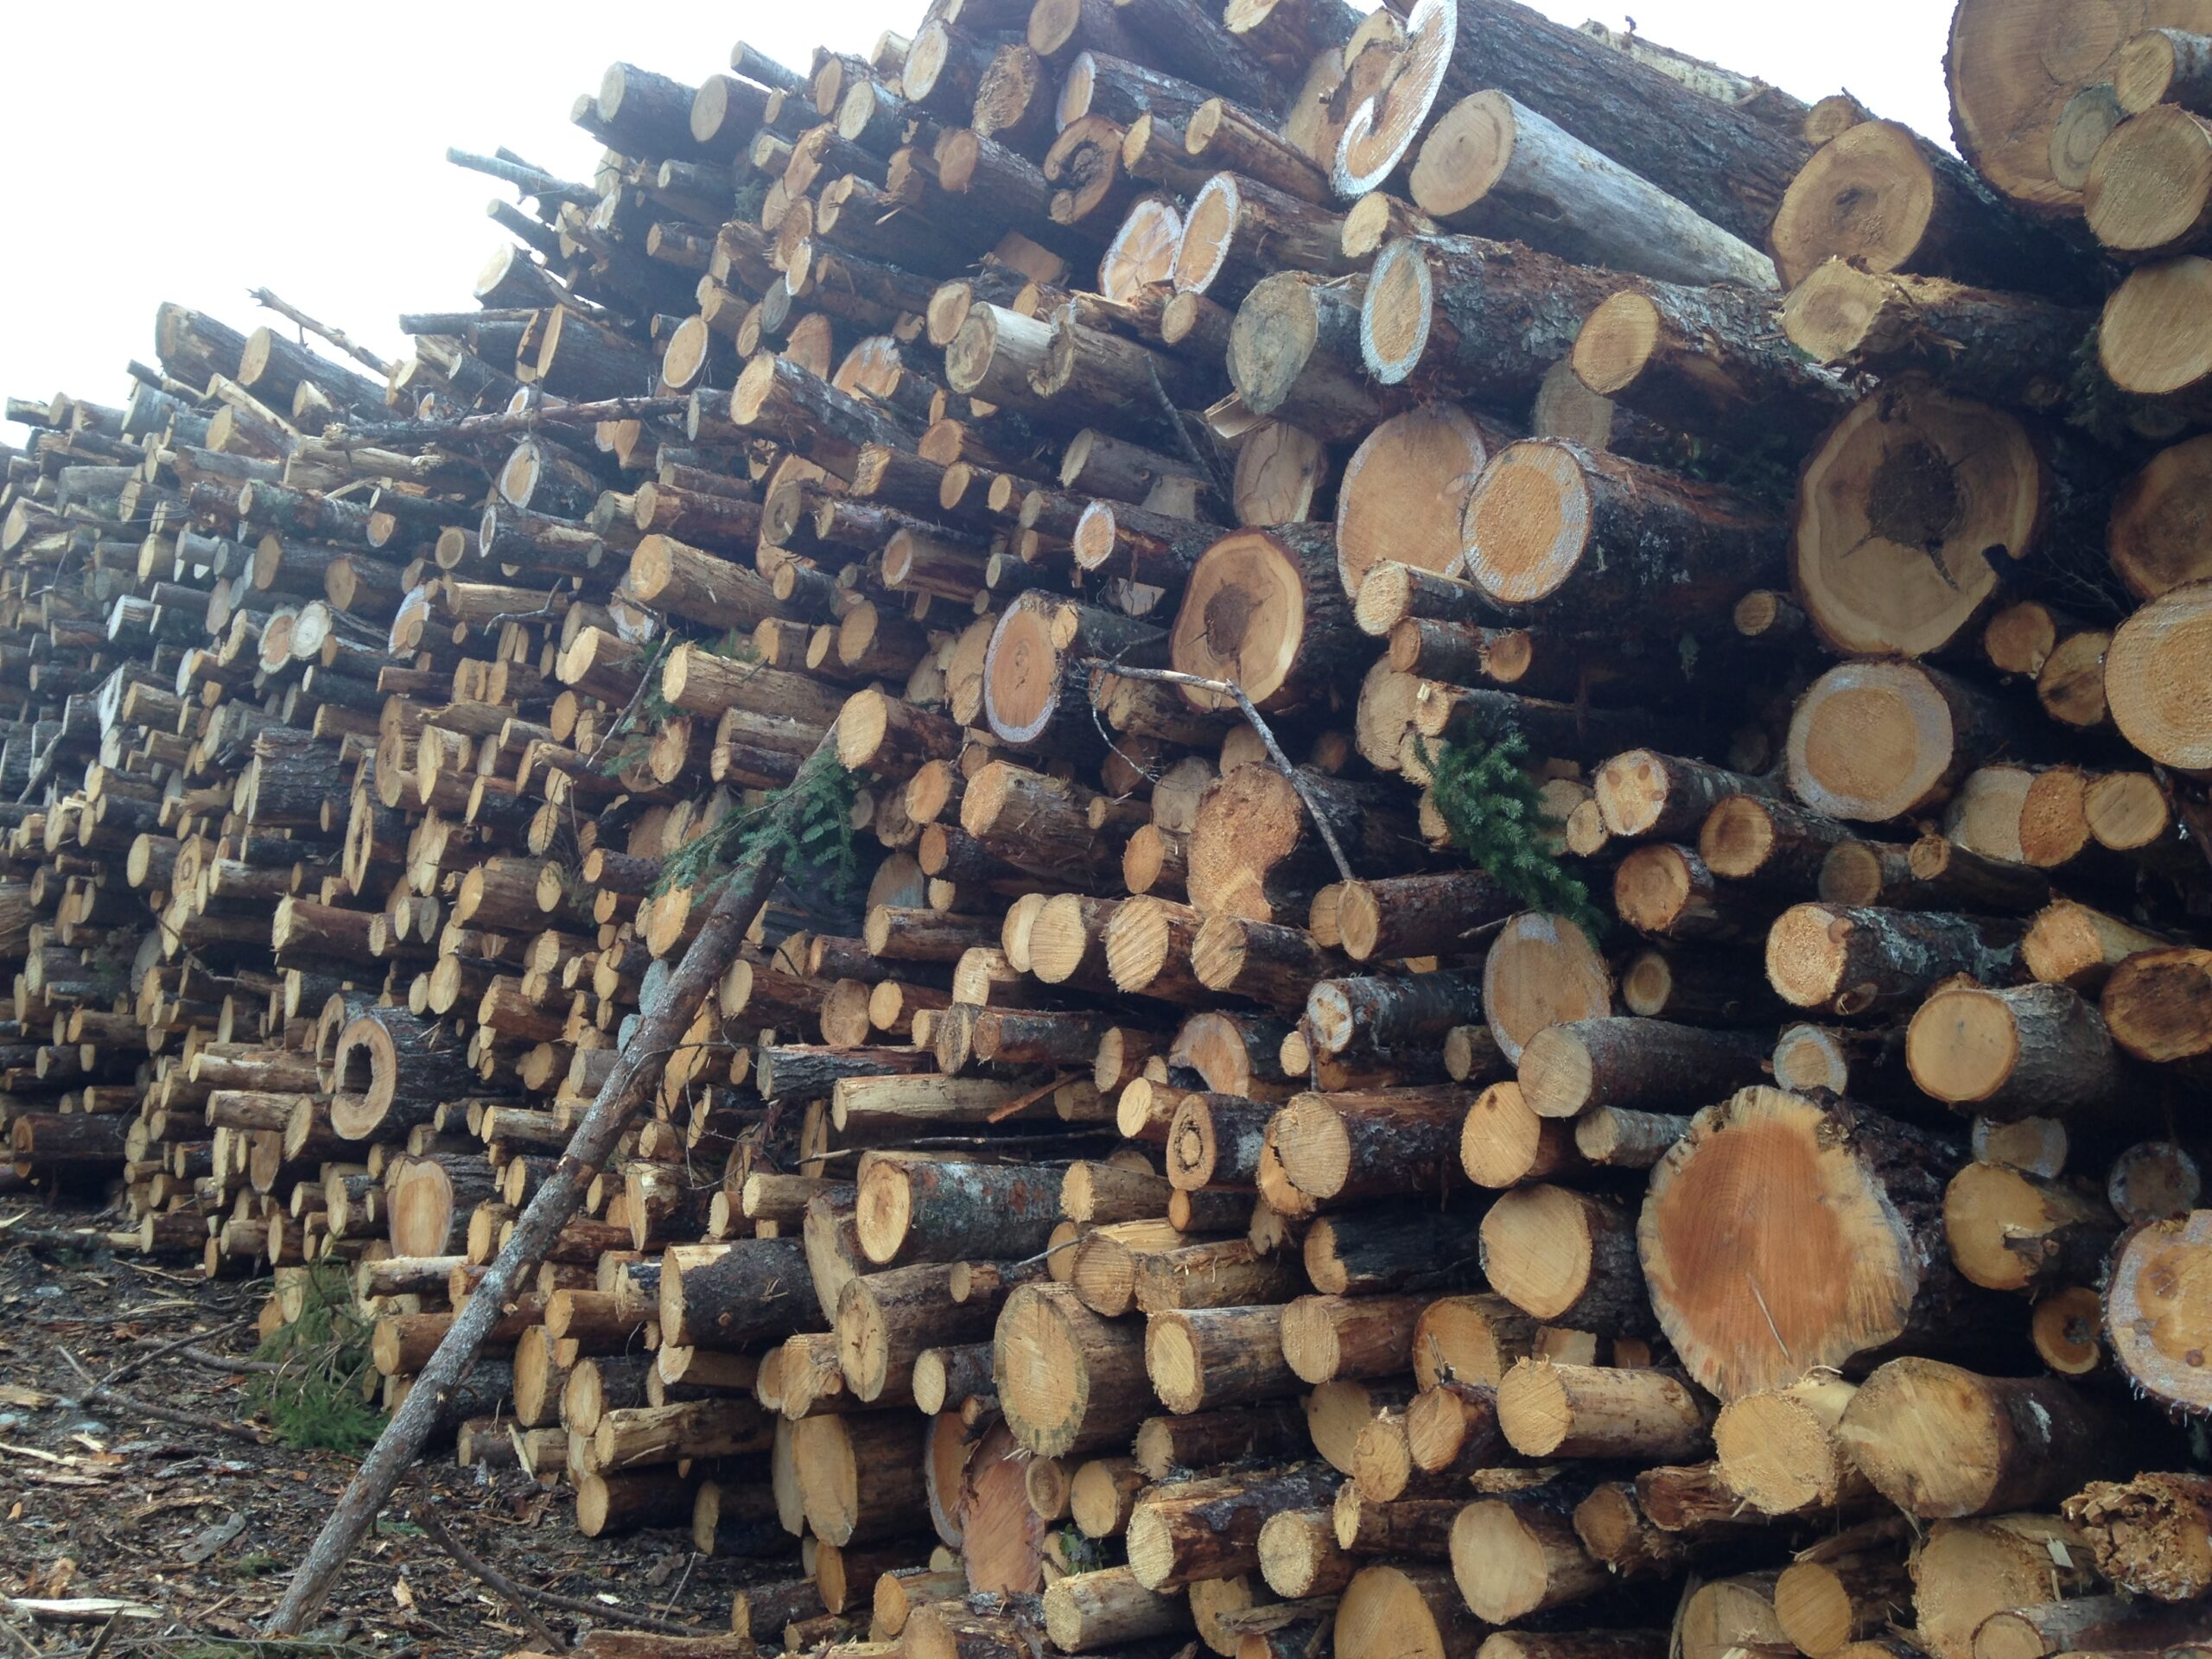 A closeup of a very large pile of logs from smaller trees that were cut down too soon.